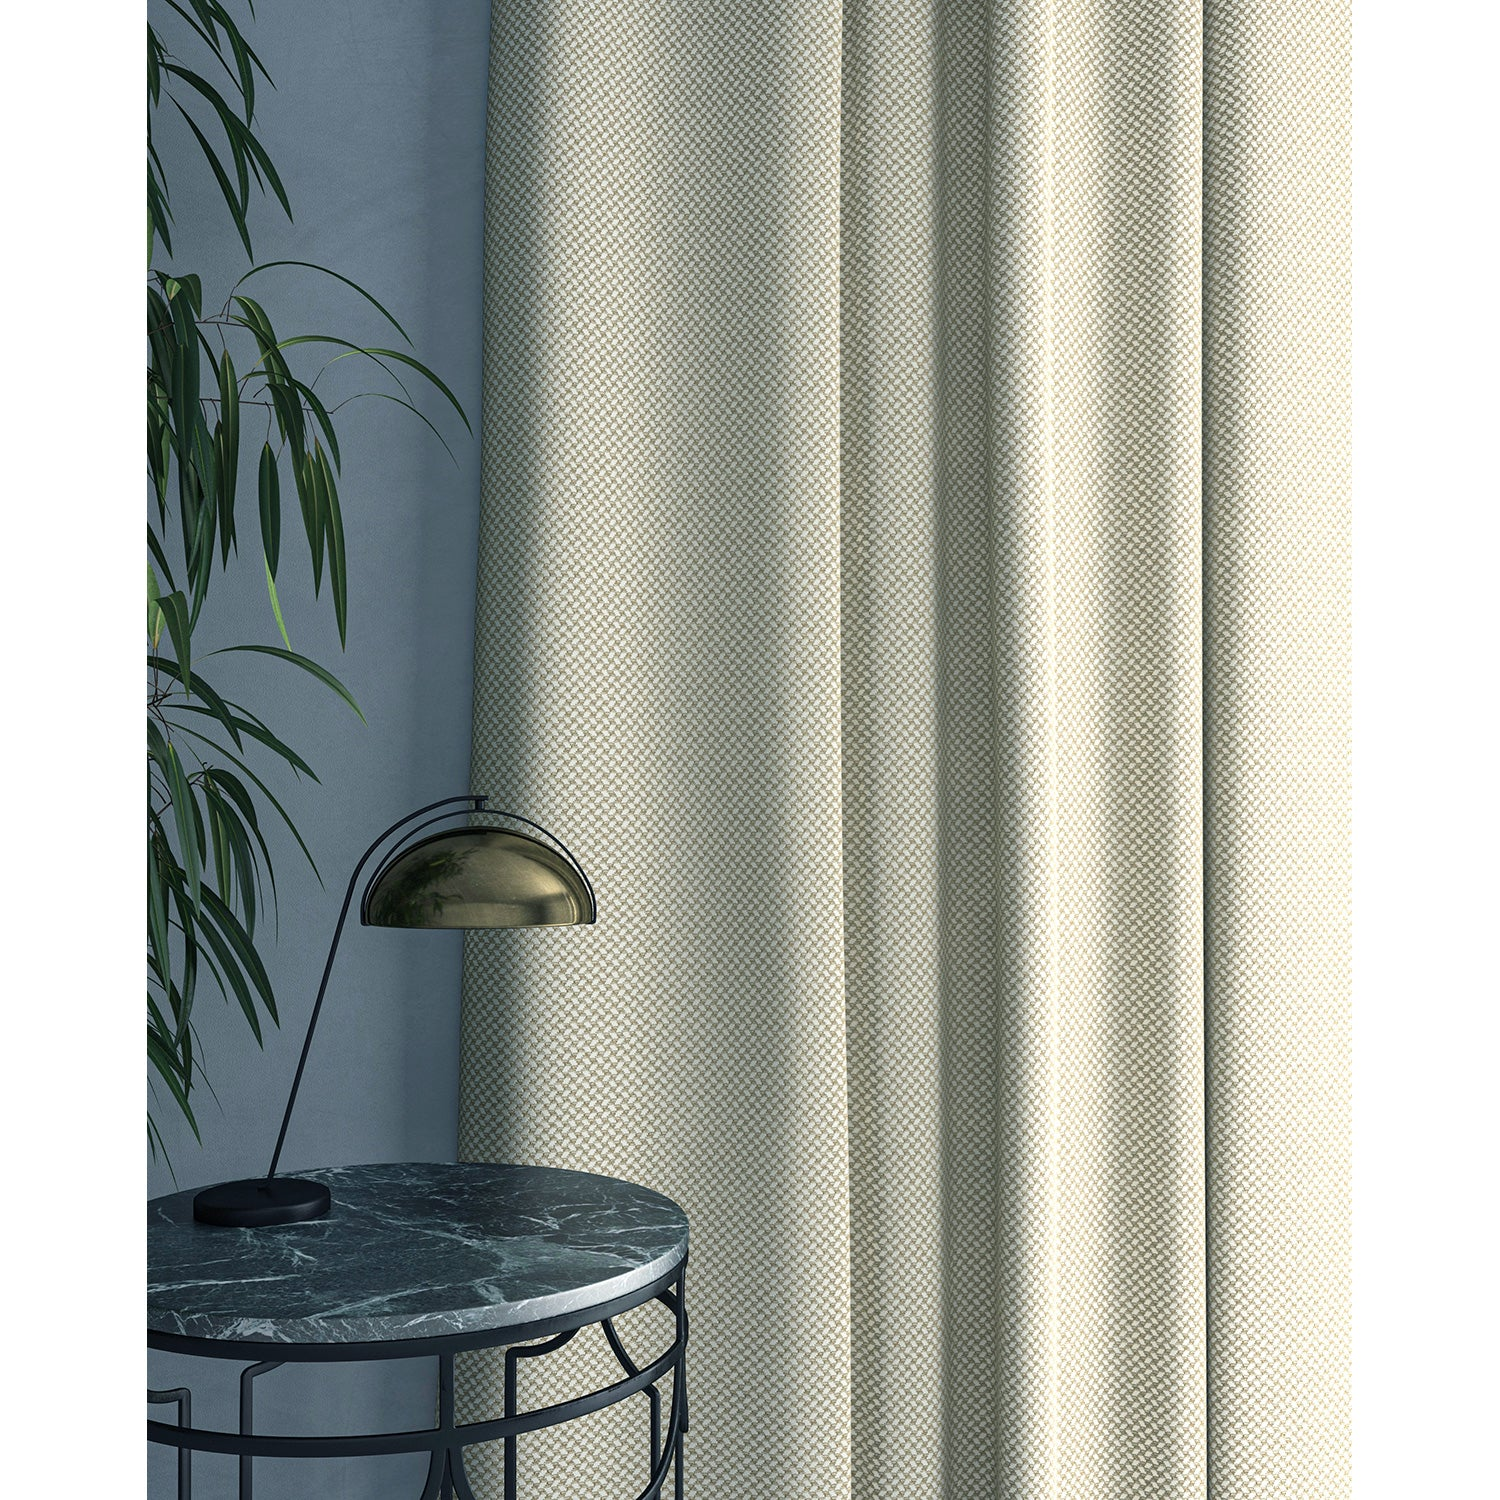 Curtain in beautiful cream stain resistant geometric weave fabric